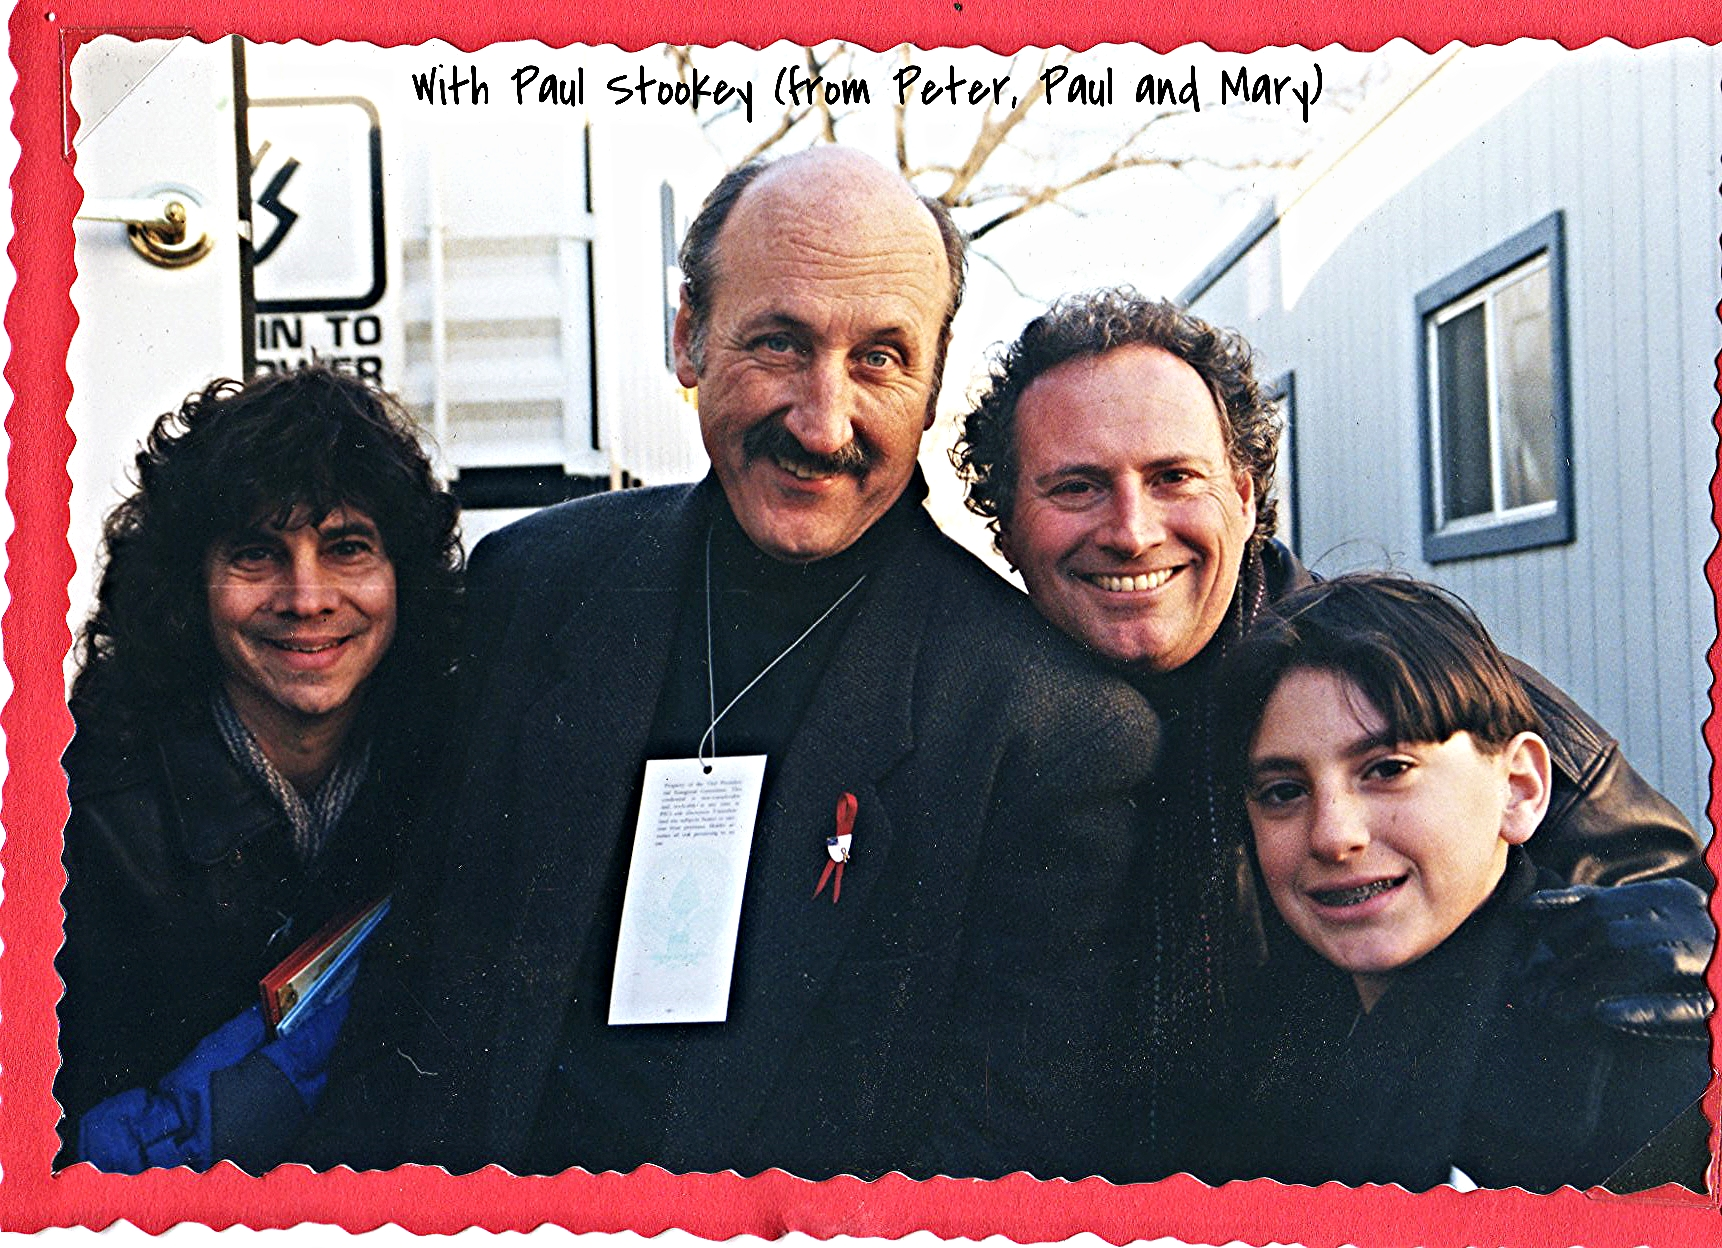 With Paul Stookey (from Peter, Paul and Mary)